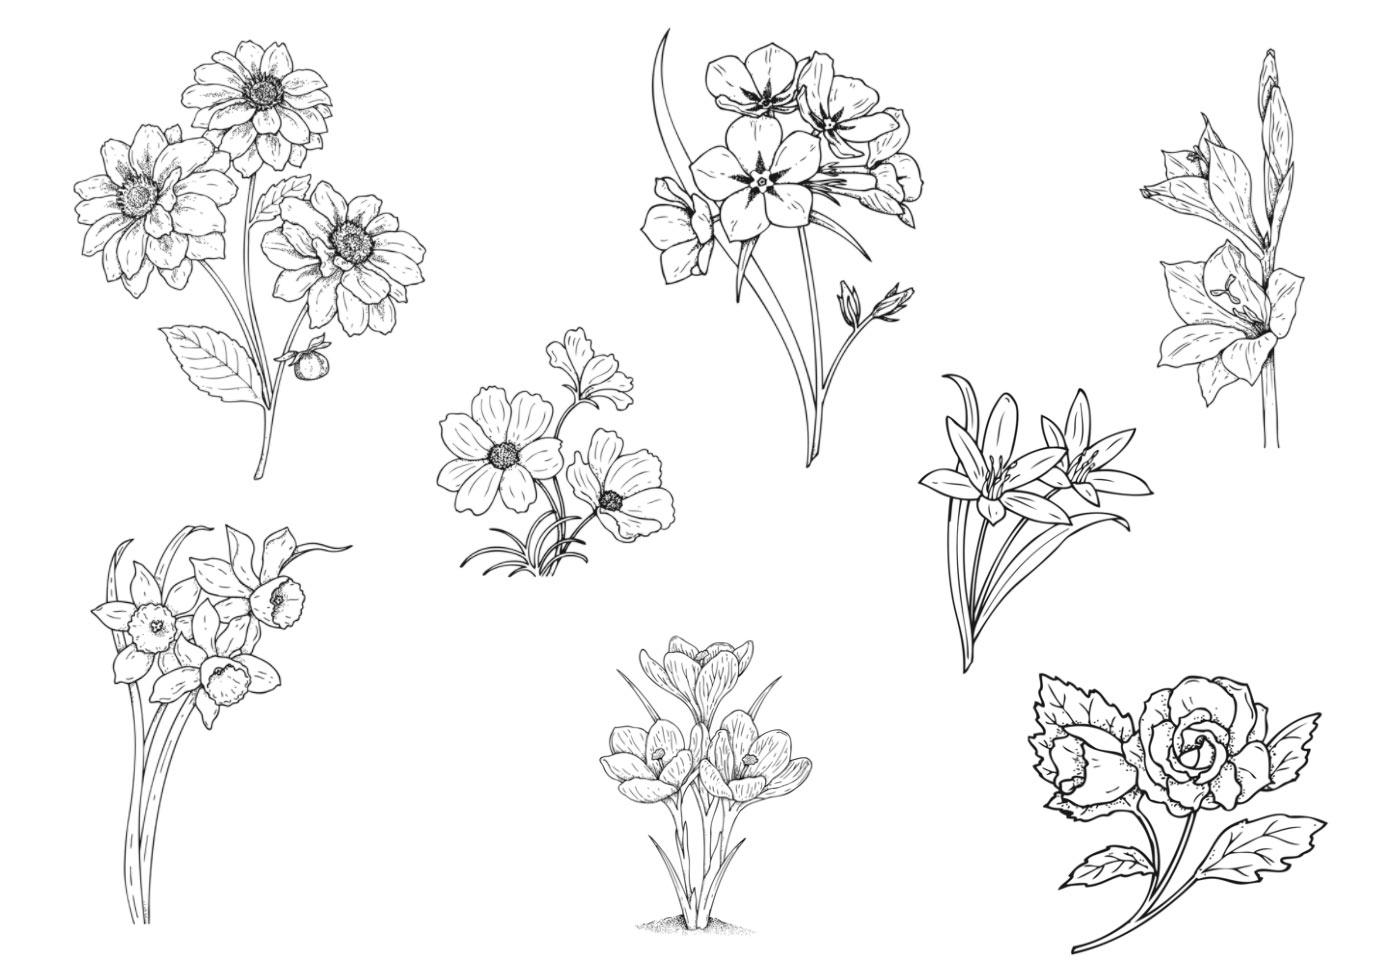 Hand Drawn Flower Brushes Pack Two Free Photoshop Brushes At